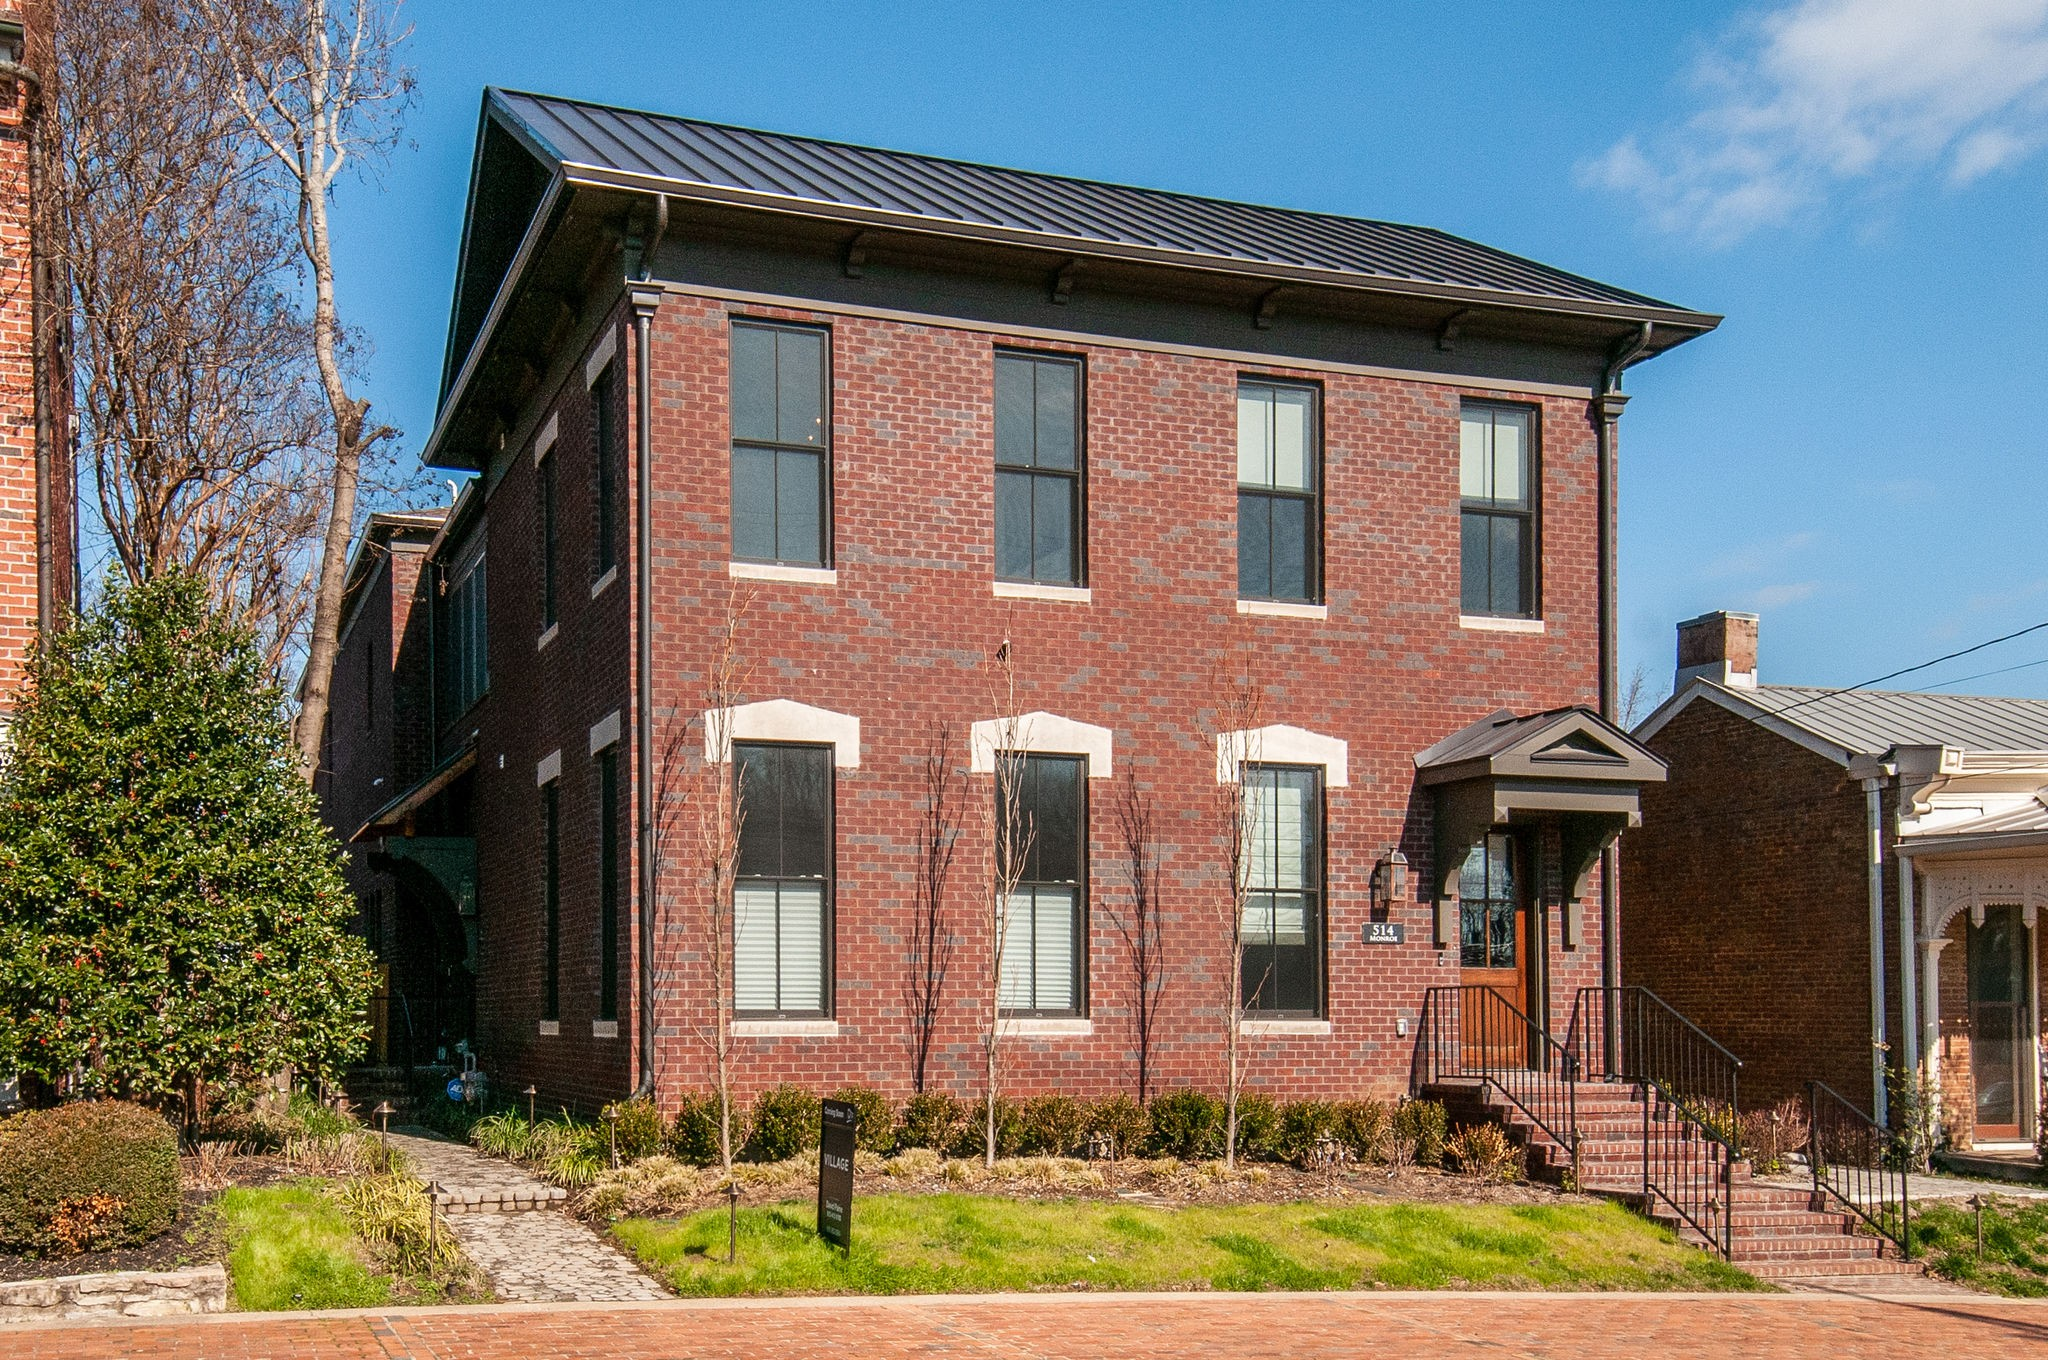 516 Monroe St Property Photo - Nashville, TN real estate listing